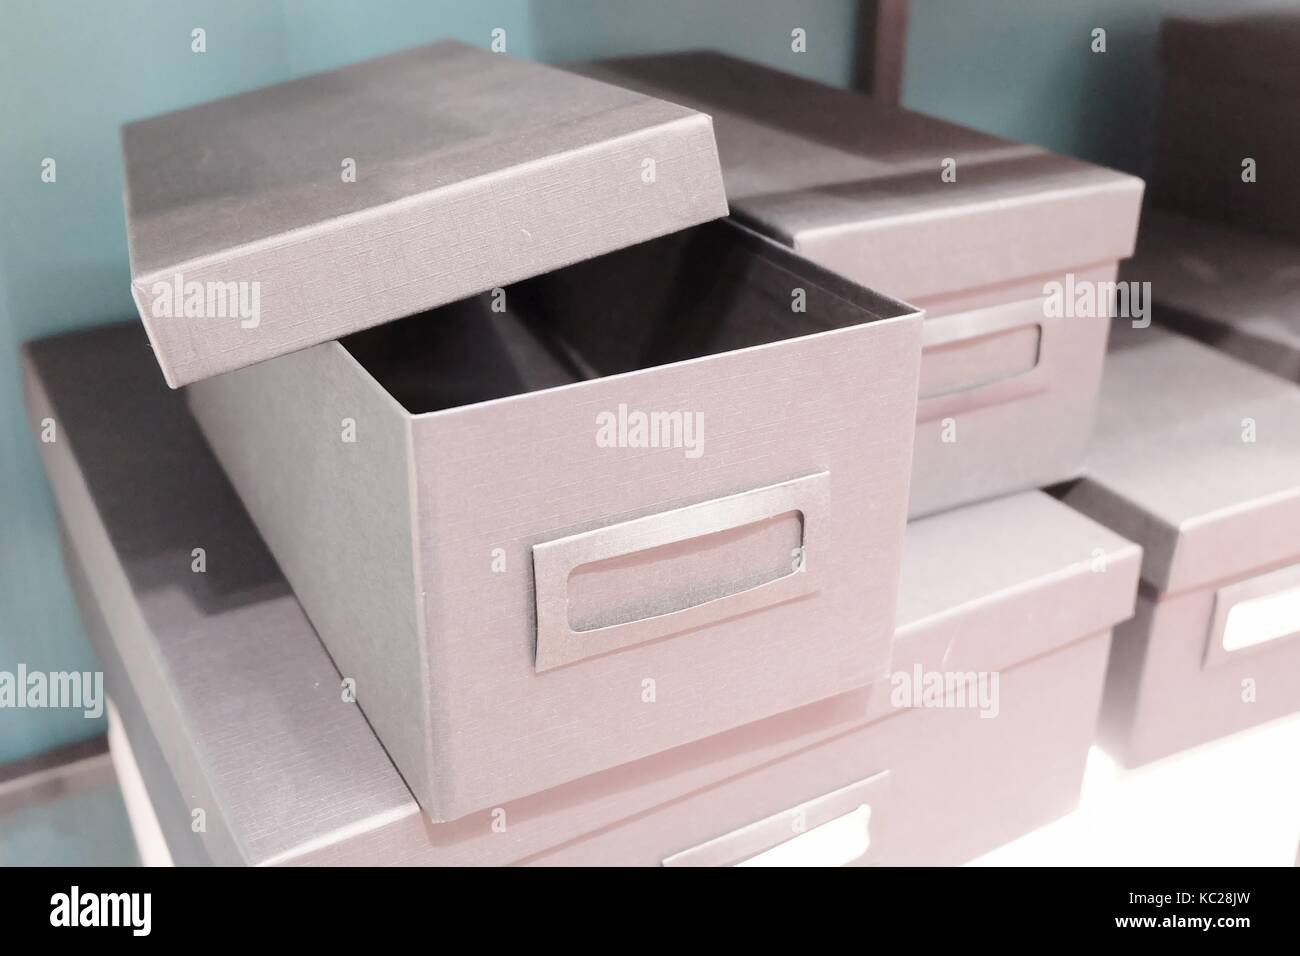 Stack of Empty Office Storage Boxes or Archive Boxes Used for Storing Paper, Media and Accessories. - Stock Image